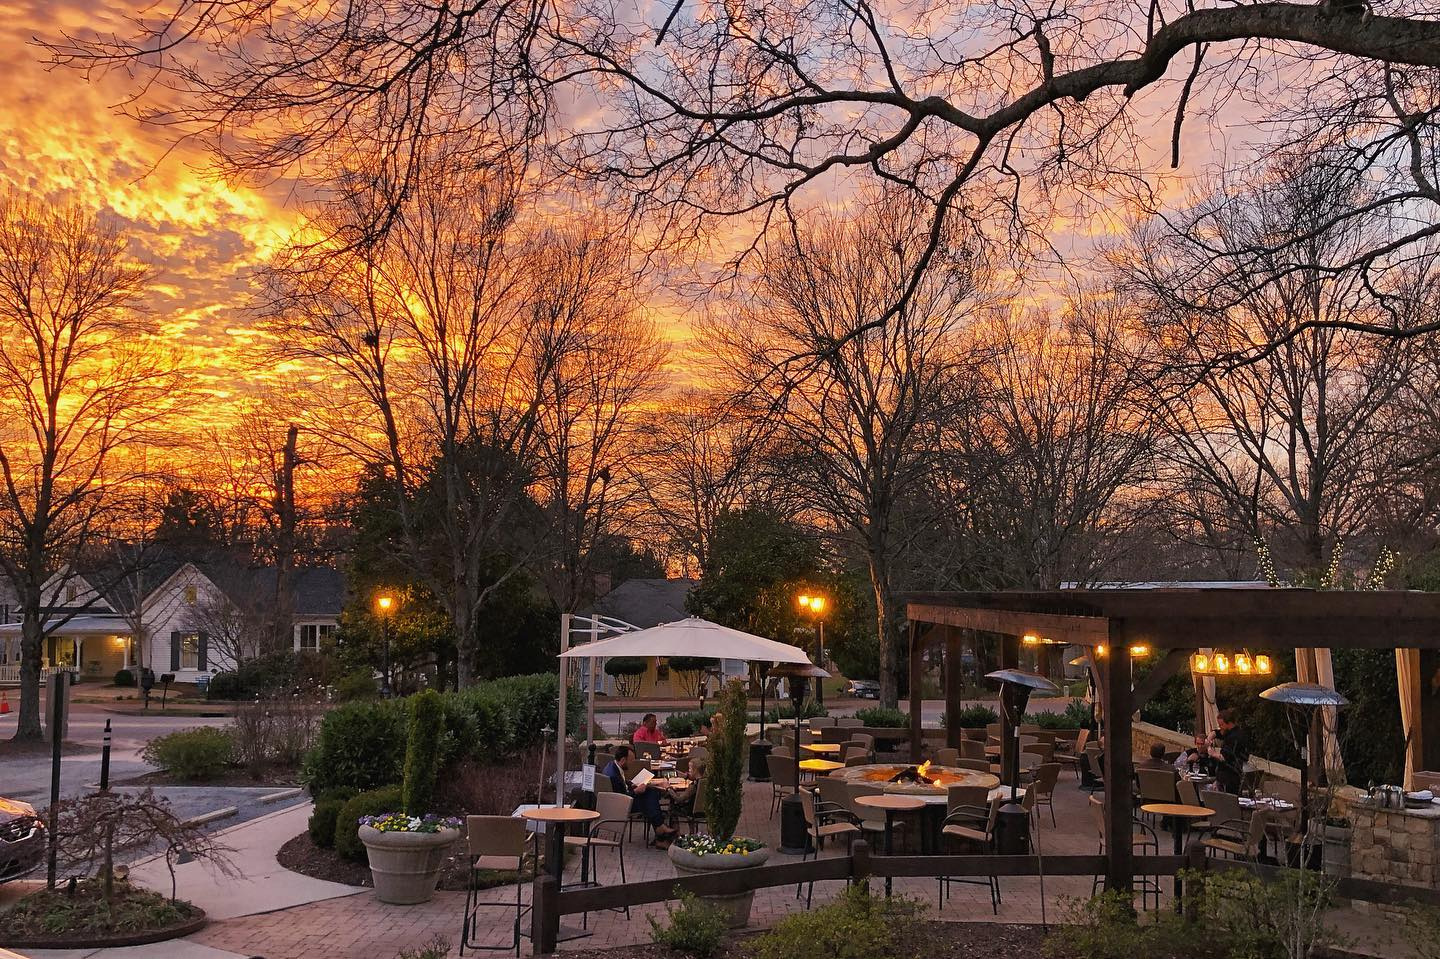 Clouds lit up by the fiery sunset on a winter's evening in Roswell, Georgia, as people dine on the stone patio around the fire pit at Osteria Mattone